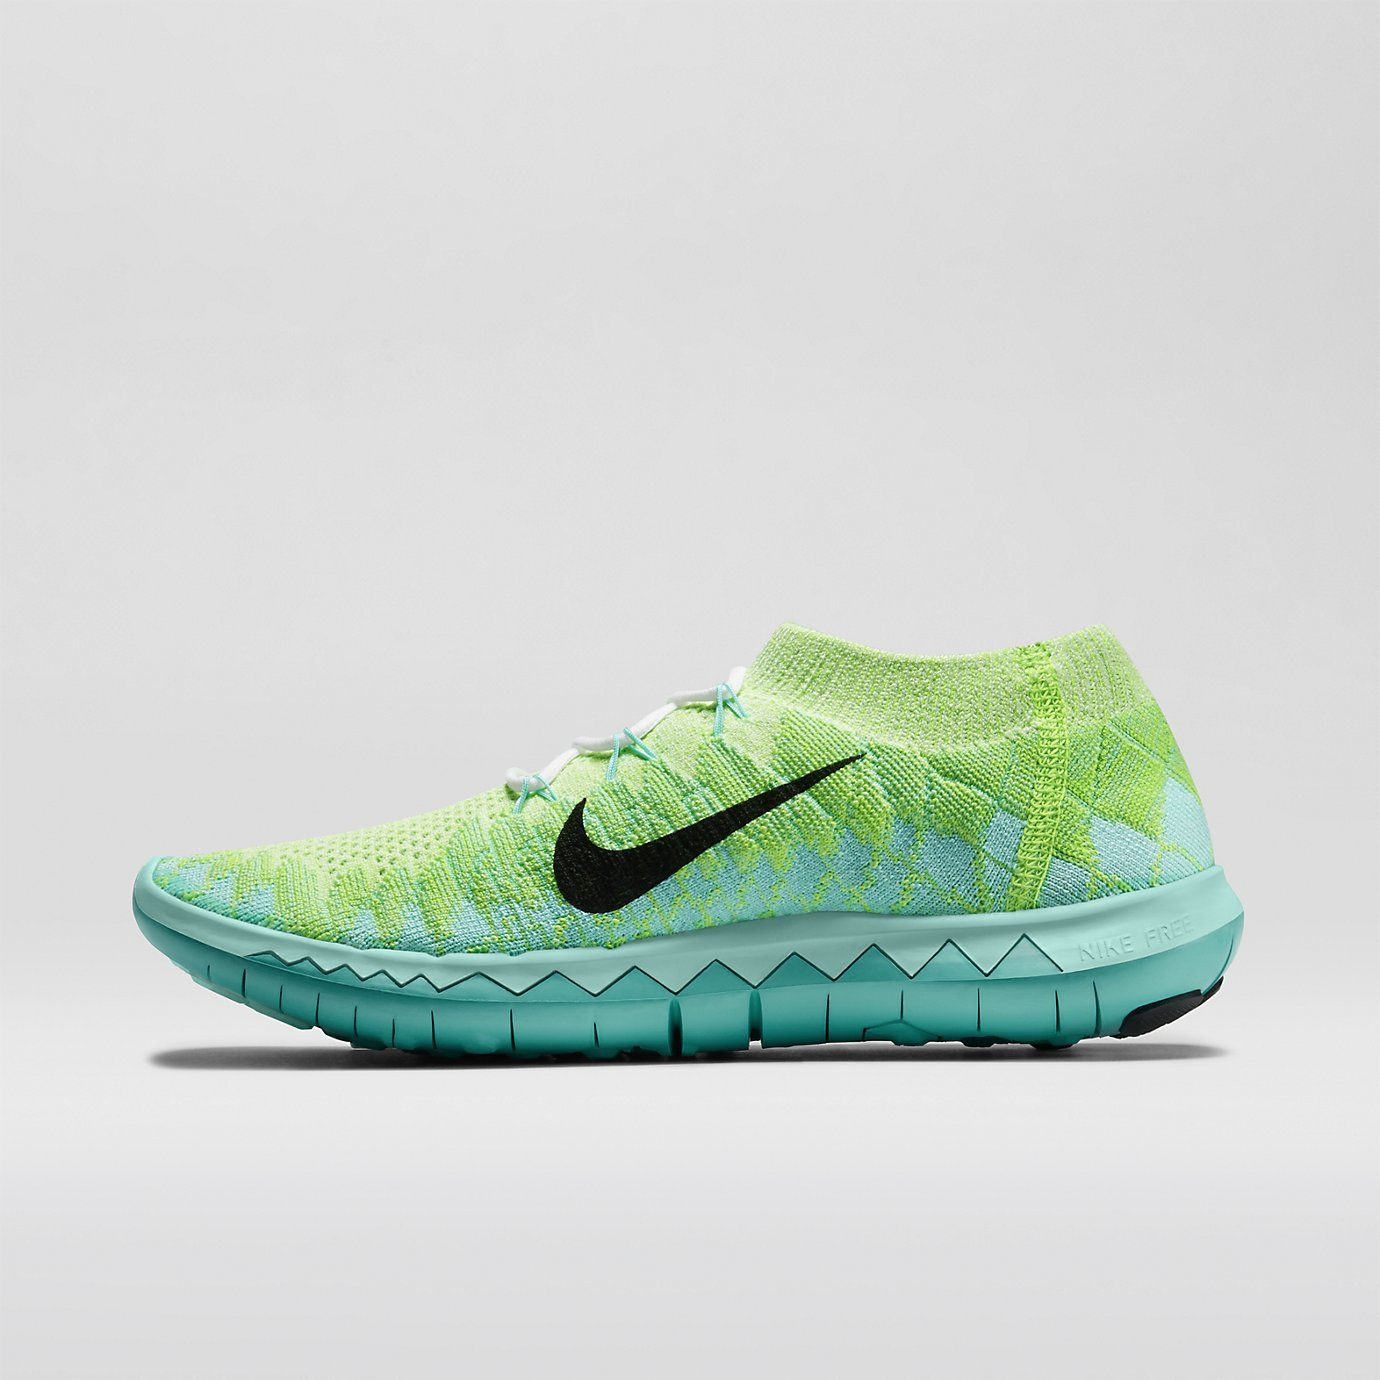 nike free 3.0 flyknit customize phone